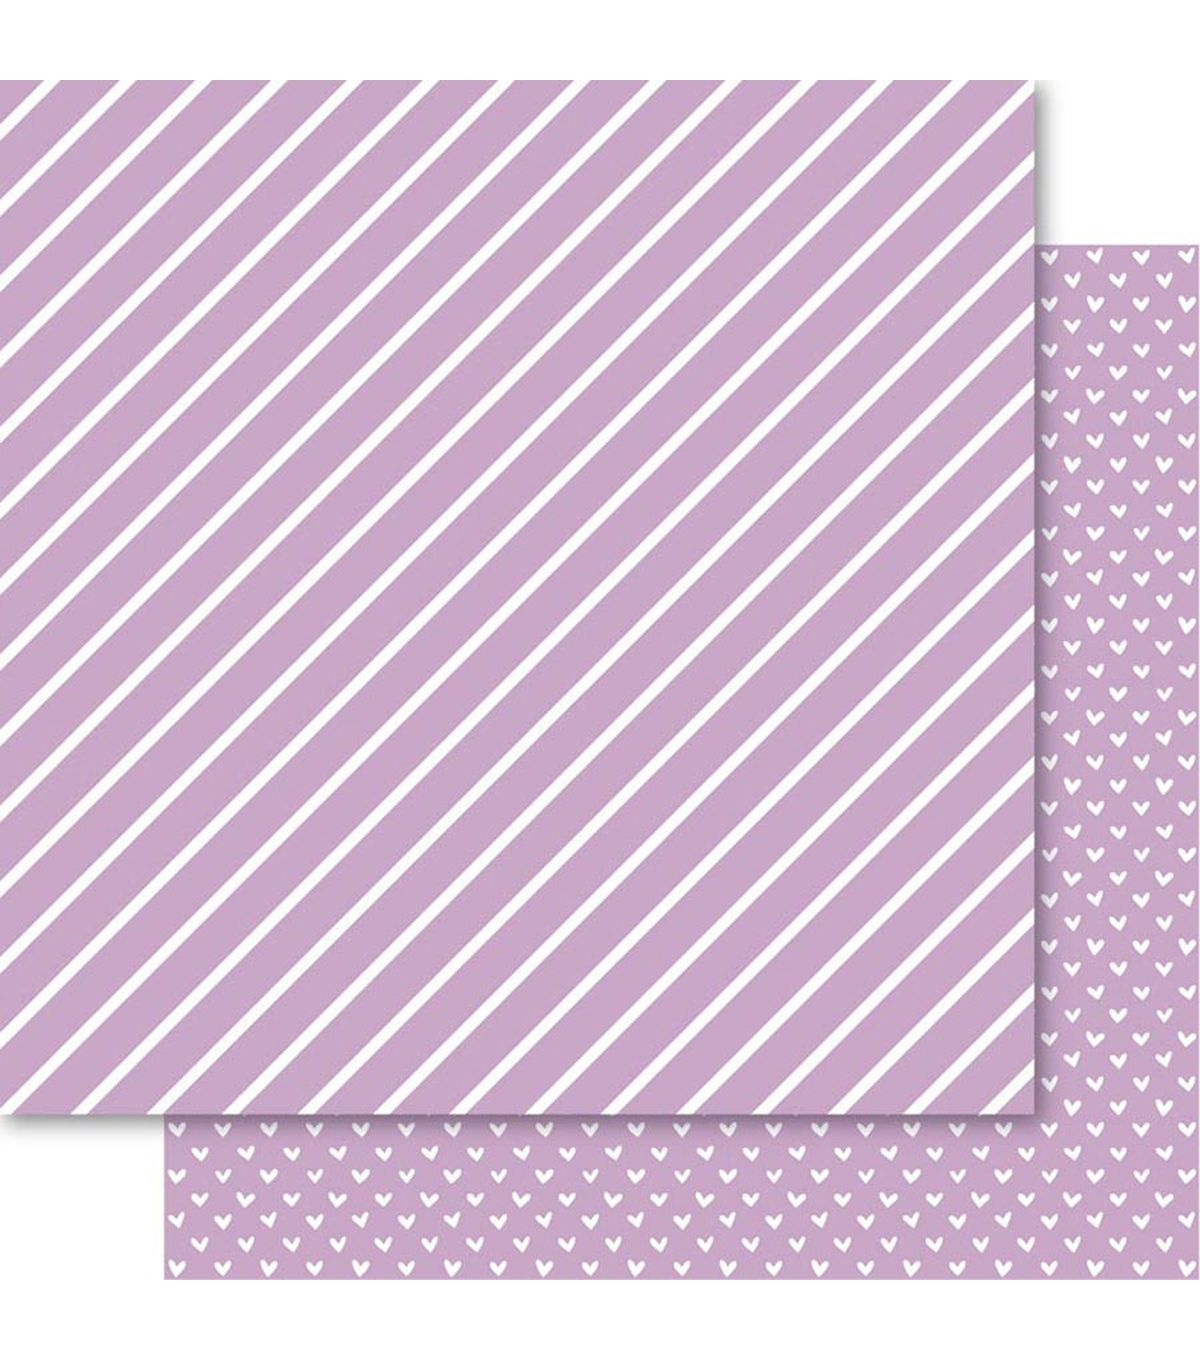 Bella! Foiled Cardstock - Hearts & Stripes - Orchid